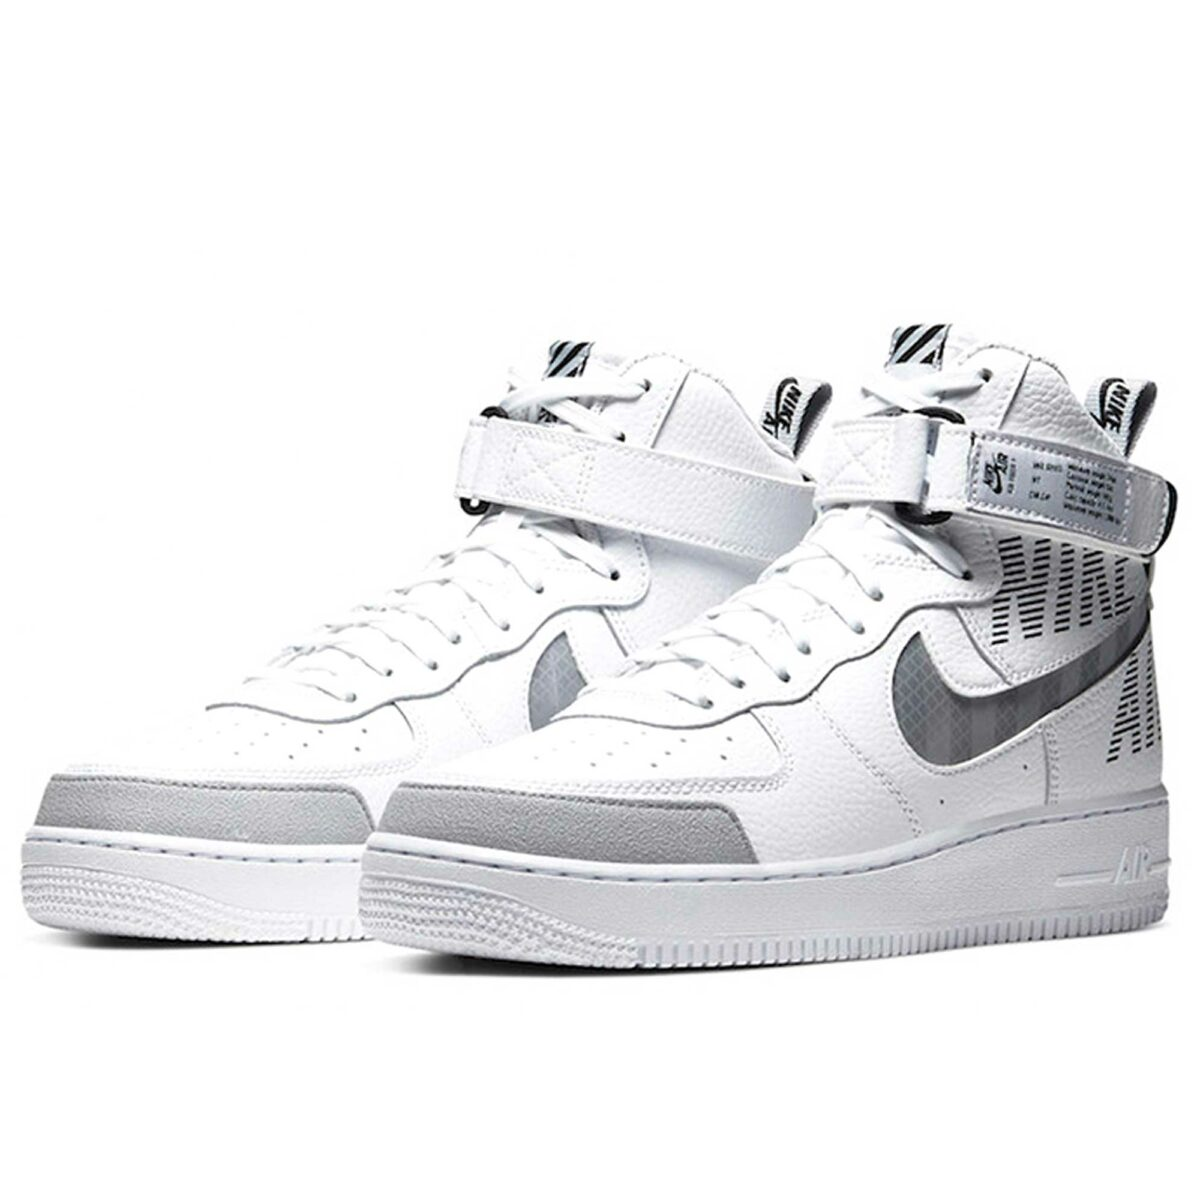 nike air force 1 high white grey CQ0449_100 купить